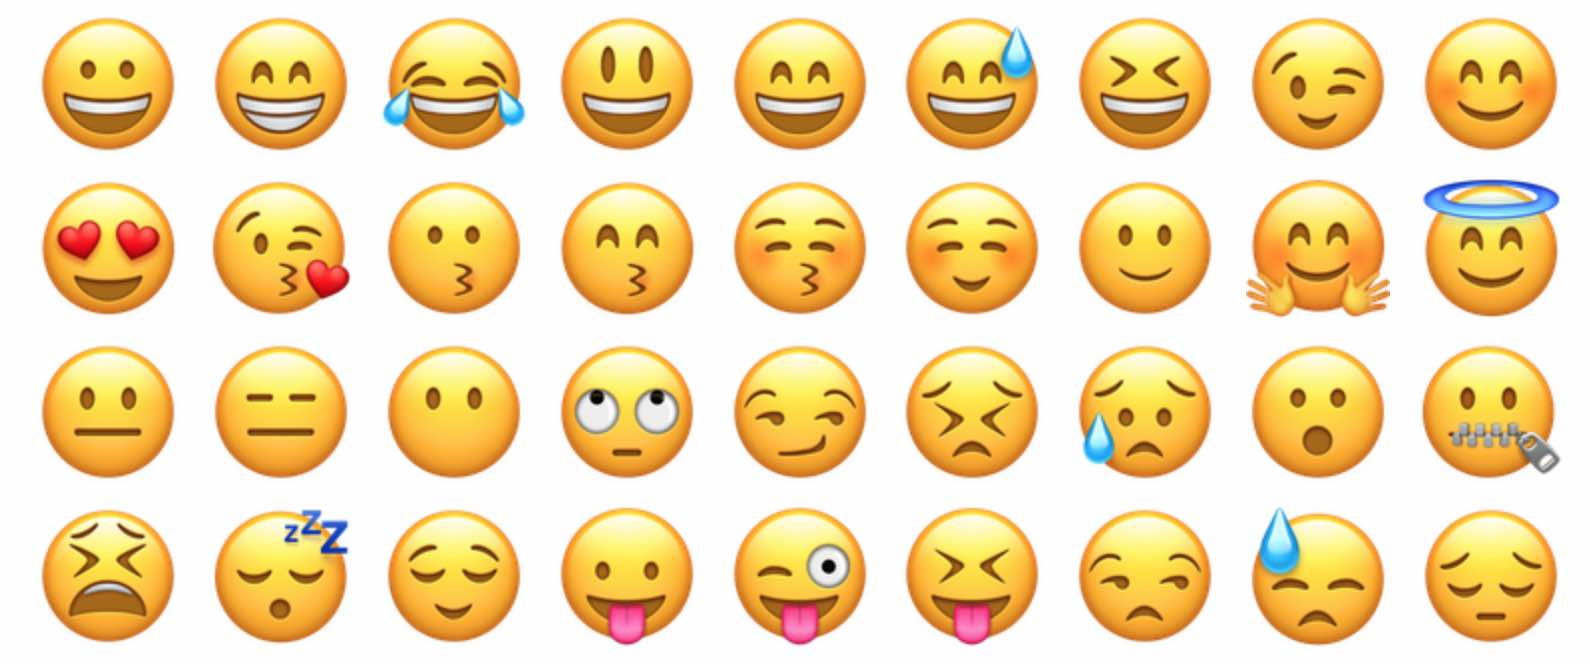 Emoticones y su significado